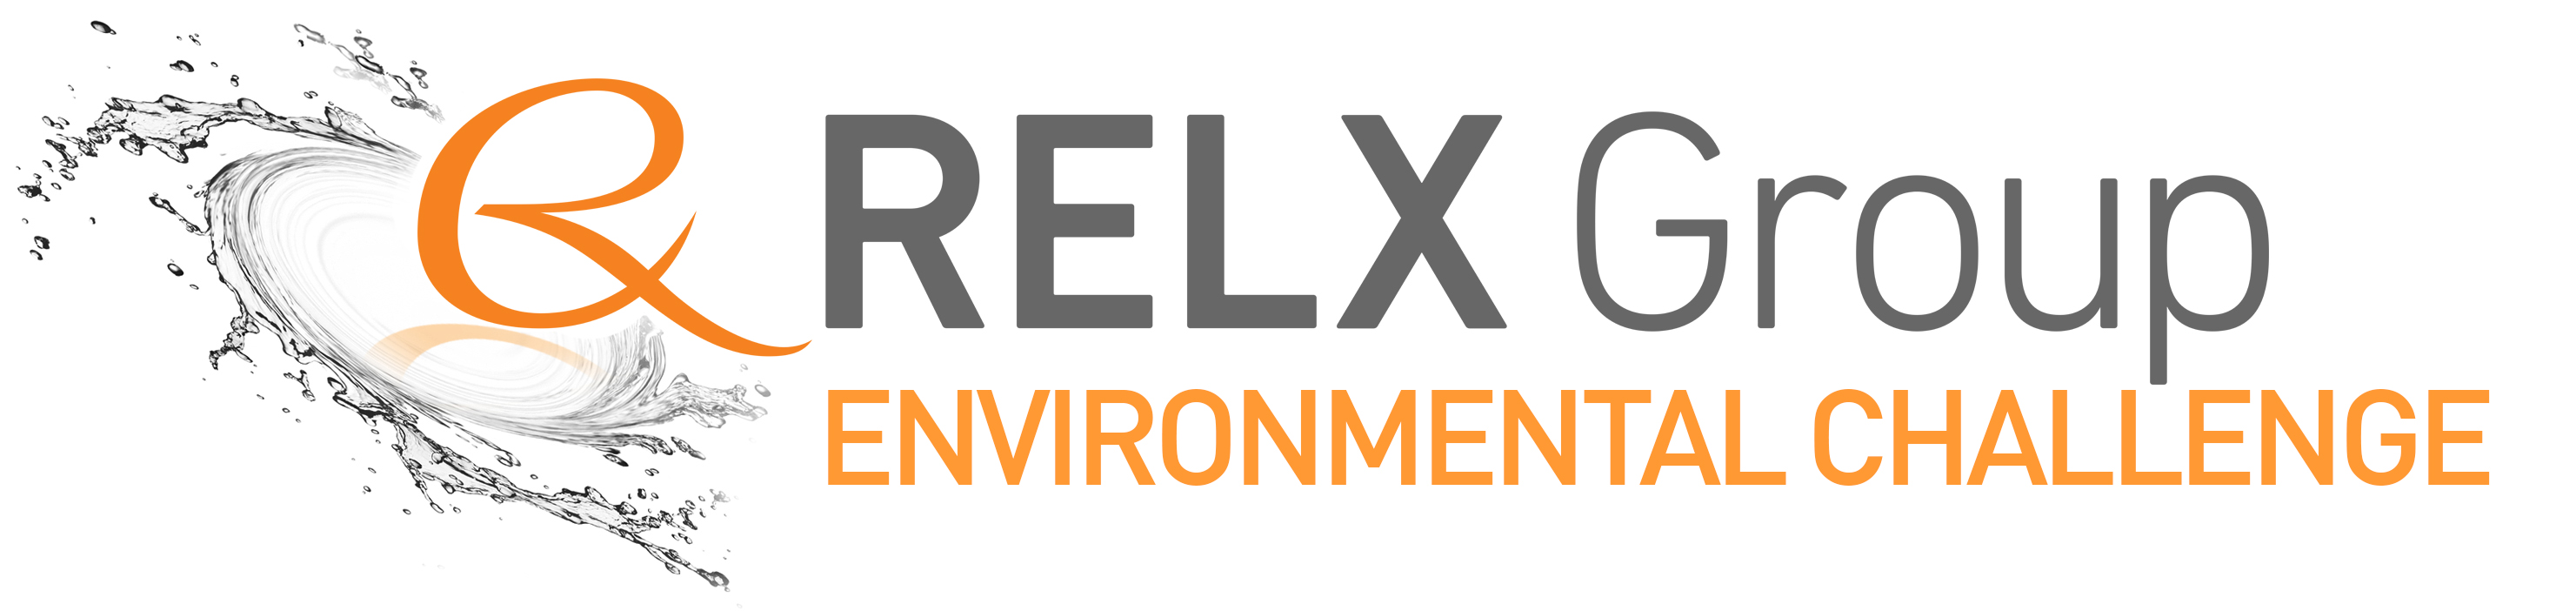 Relx Group Environmental Challenge logo